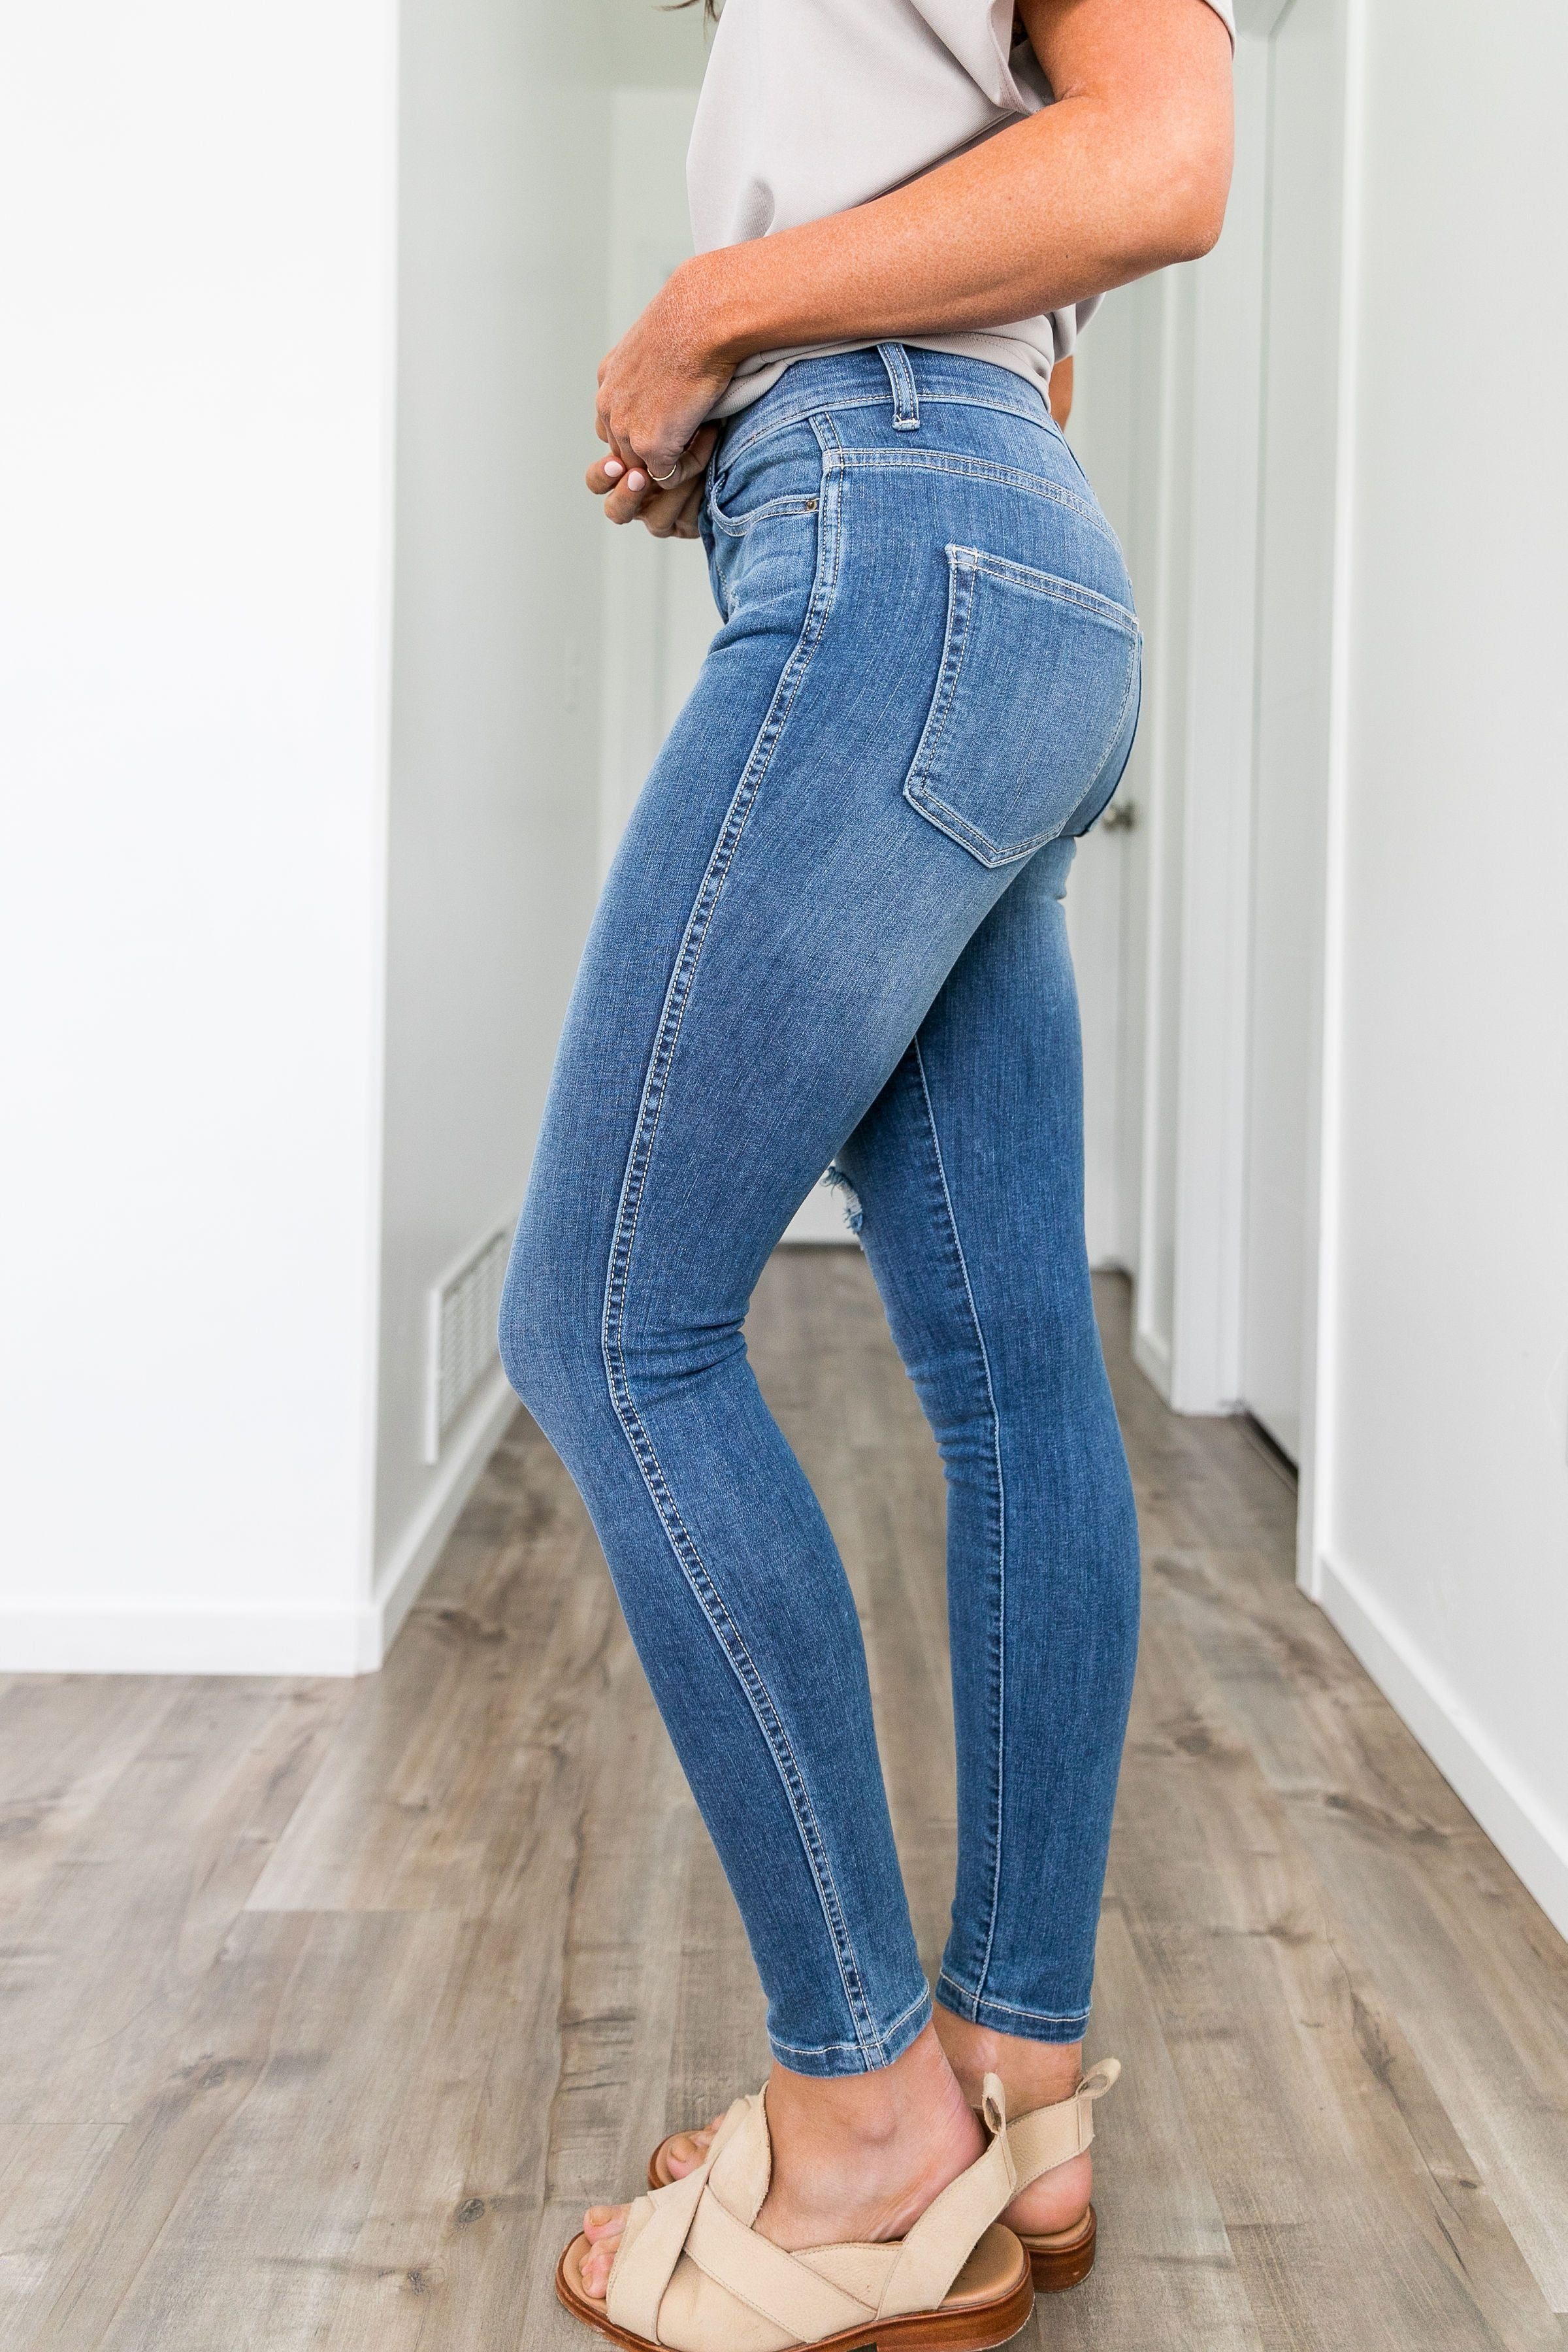 Springtime High Rise Skinny Jeans - ALL SALES FINAL